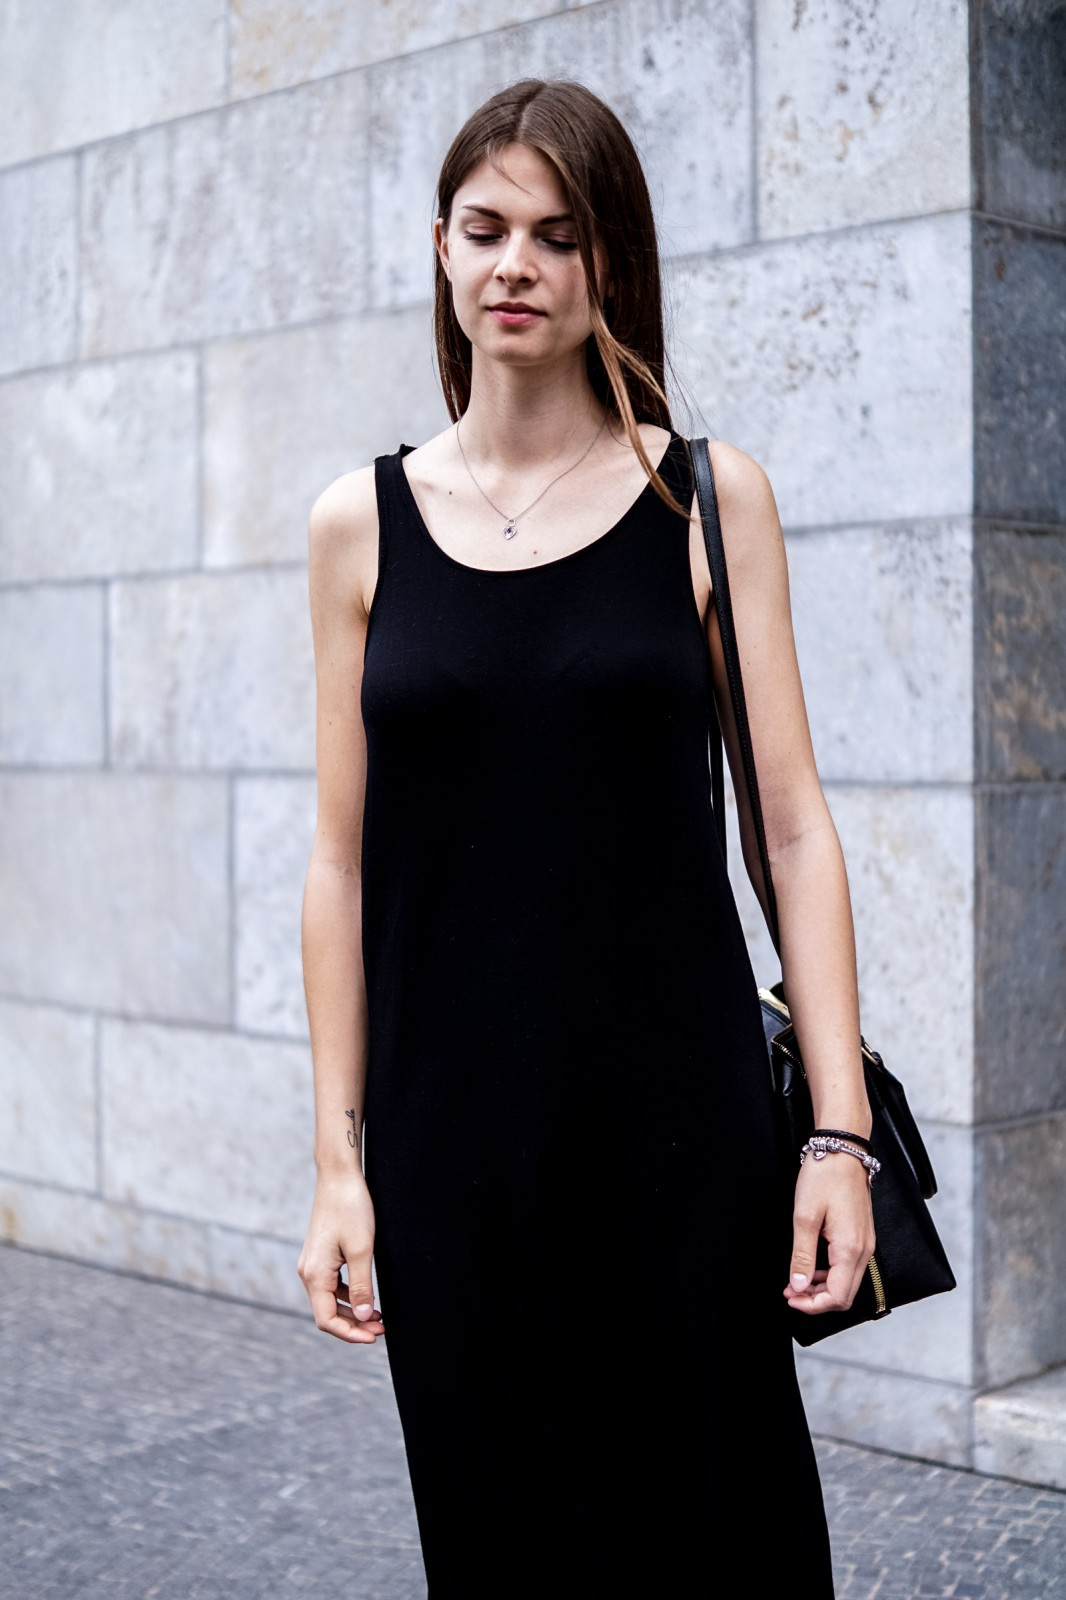 Black dress with touch of red -  Fashionblogger Jacky From Whaelse Com